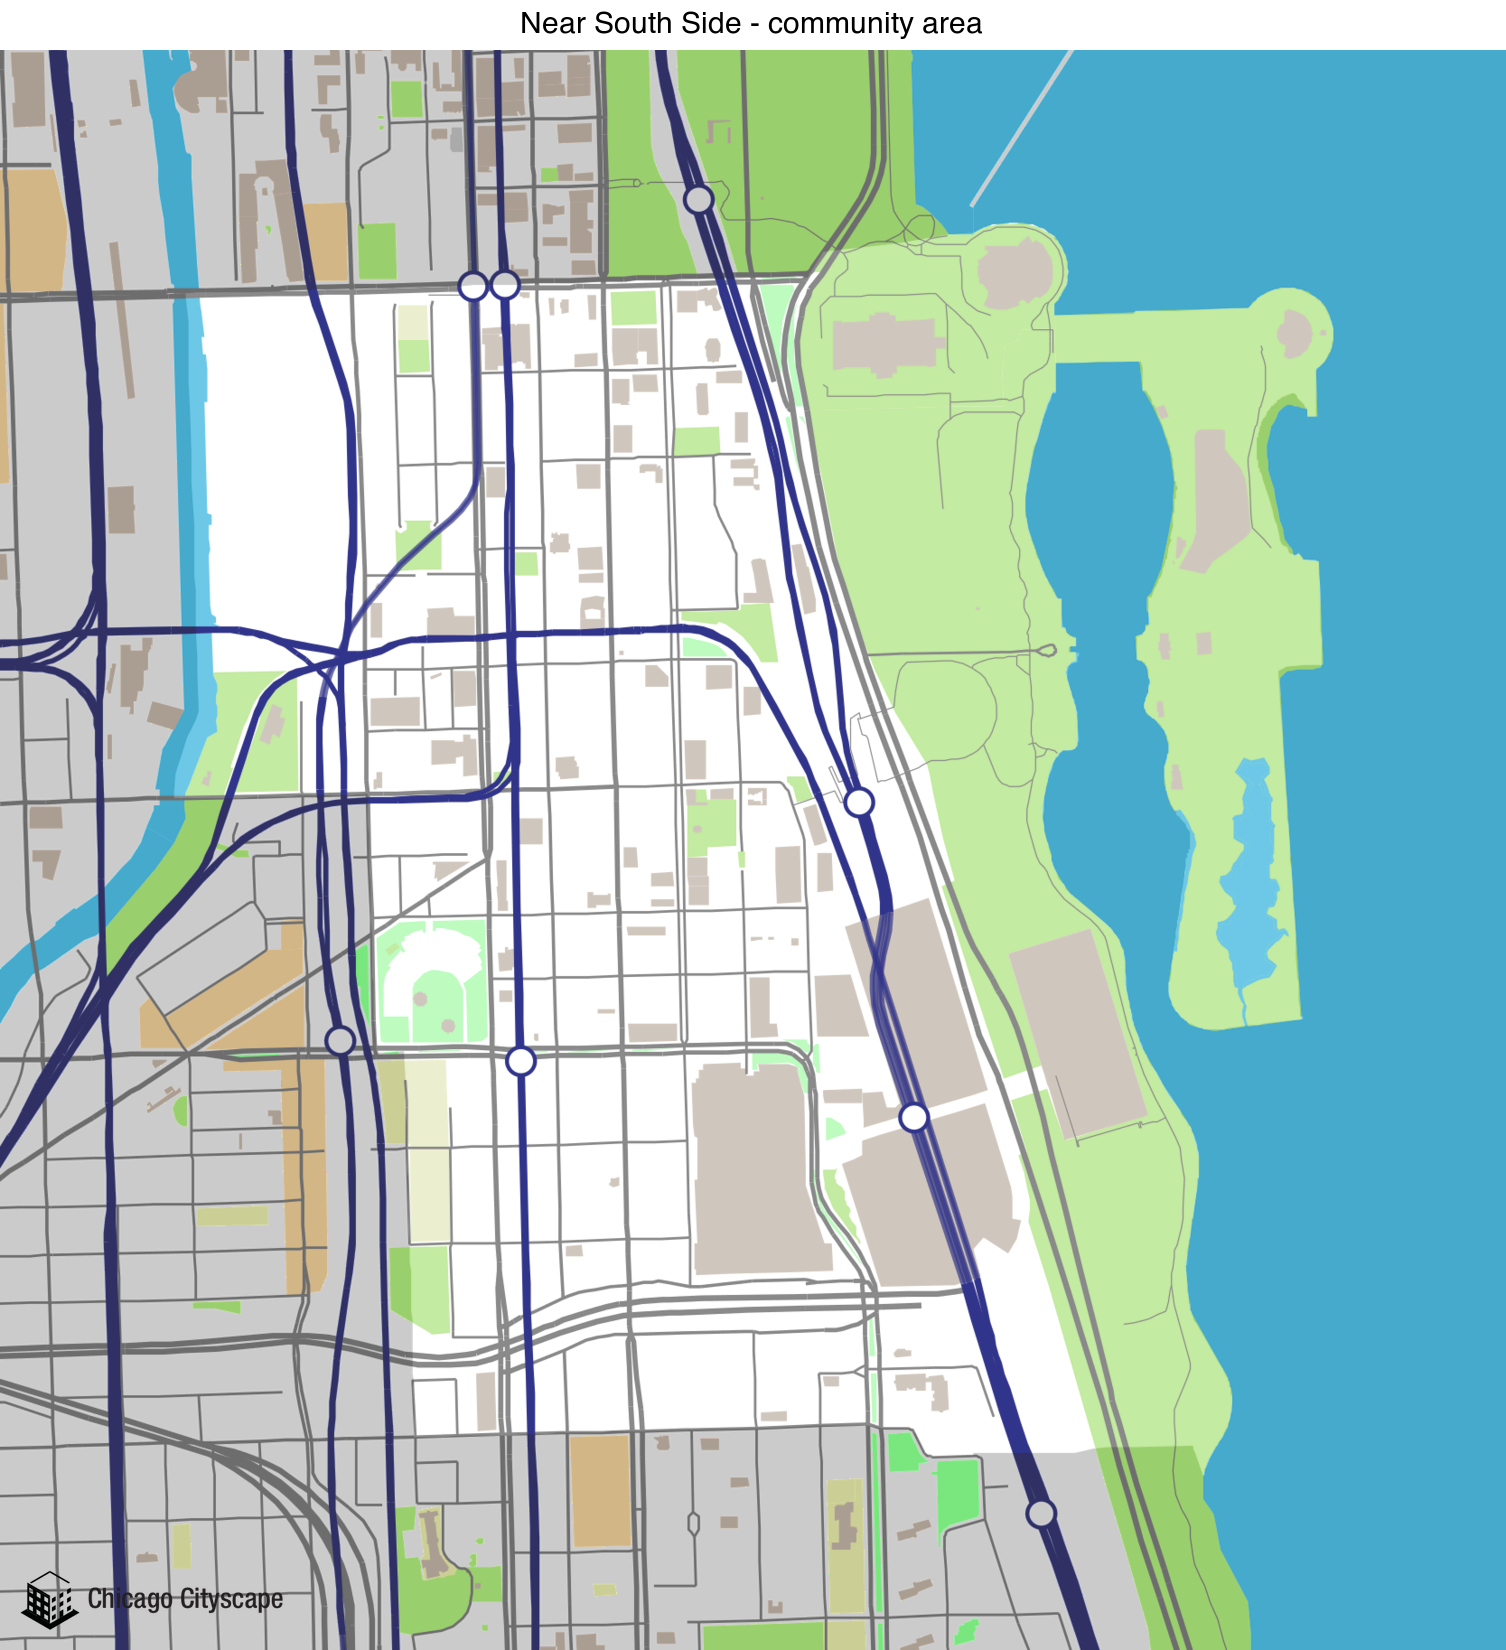 Map of building projects properties and businesses in Near South